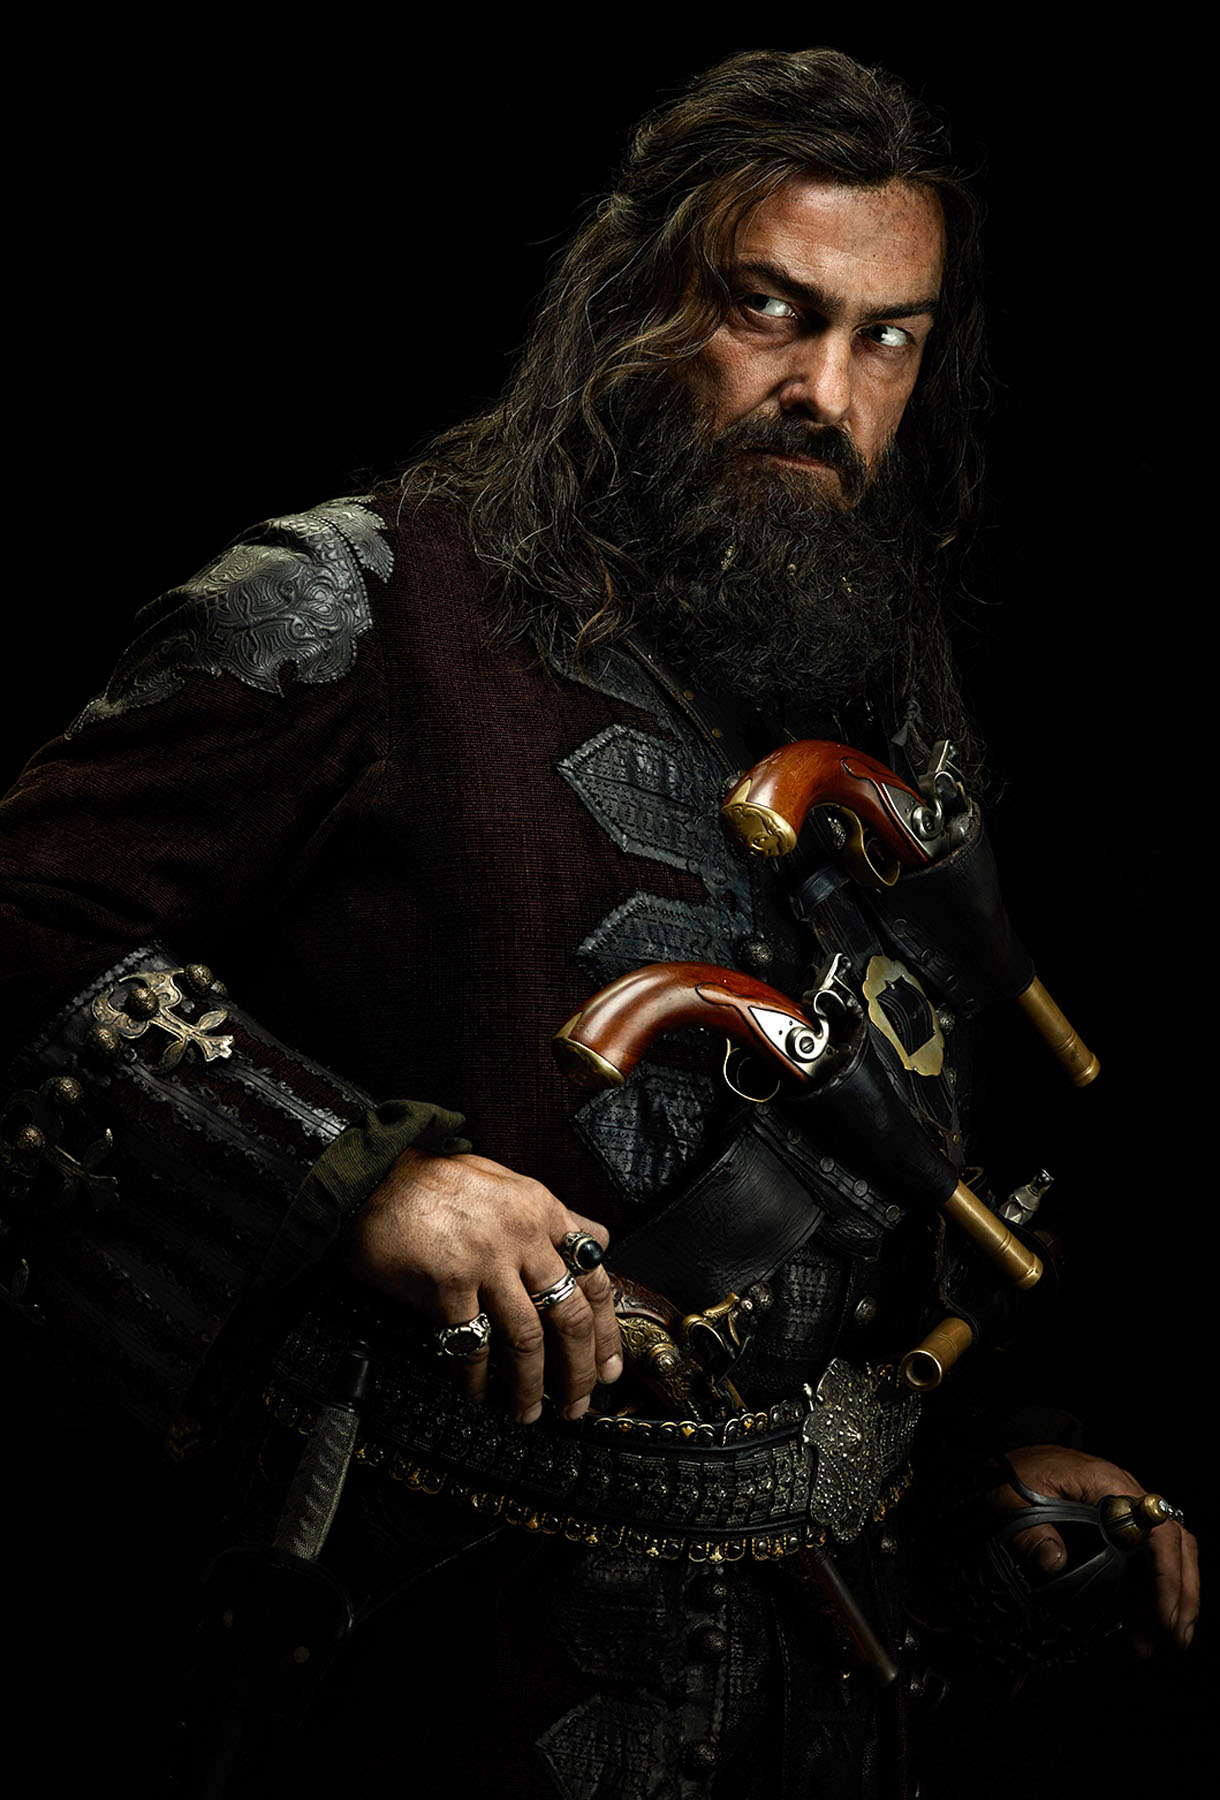 Edward Teach Black Sails Wiki Fandom Powered By Wikia